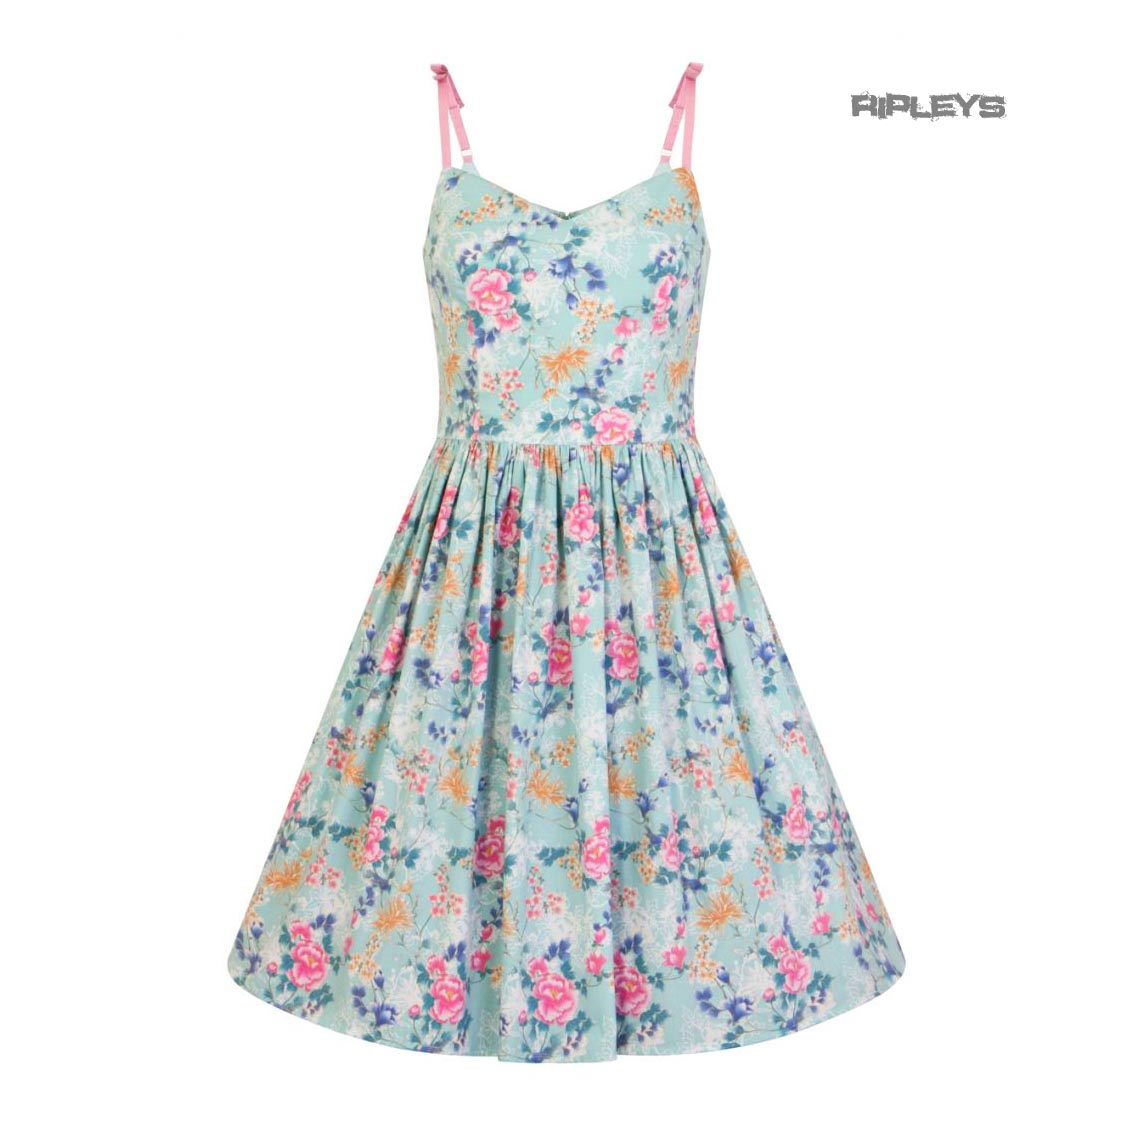 Hell-Bunny-50s-Mid-Length-Dress-Vintage-Blue-Pink-SAKURA-Flowers-Roses-All-Sizes thumbnail 17